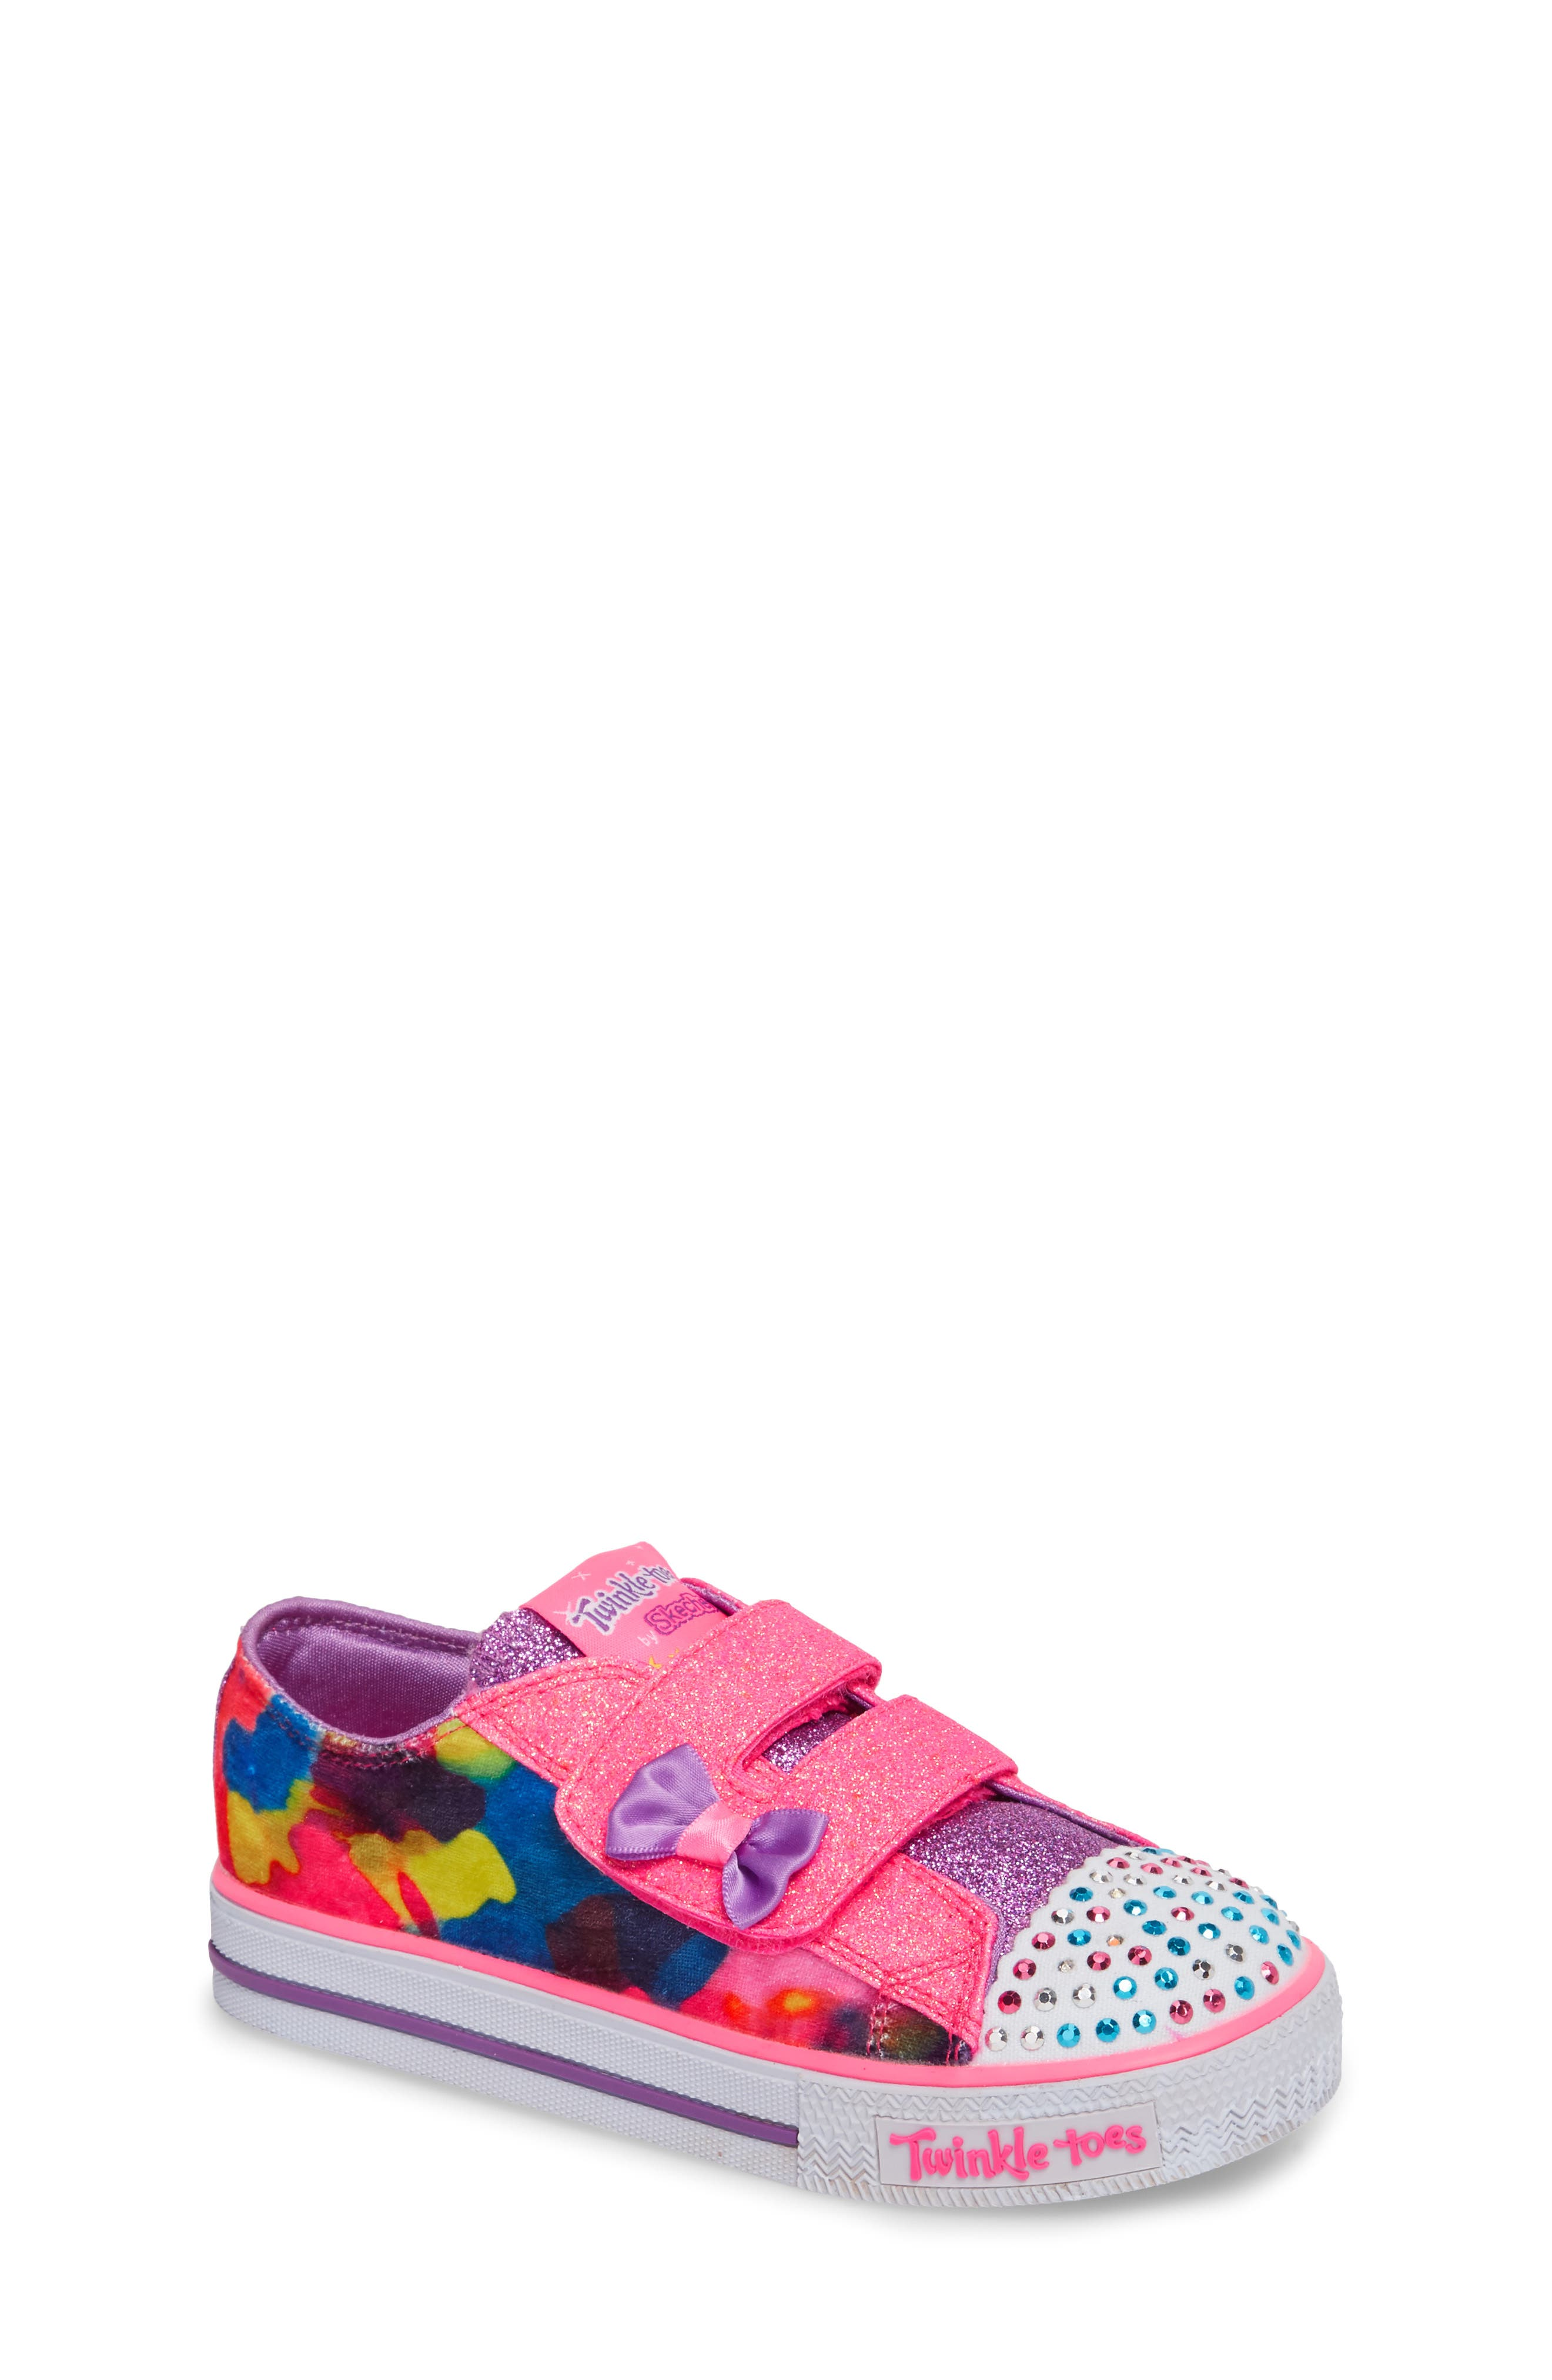 Shuffles - Itsy Bitsy Light-Up Sneaker,                             Main thumbnail 3, color,